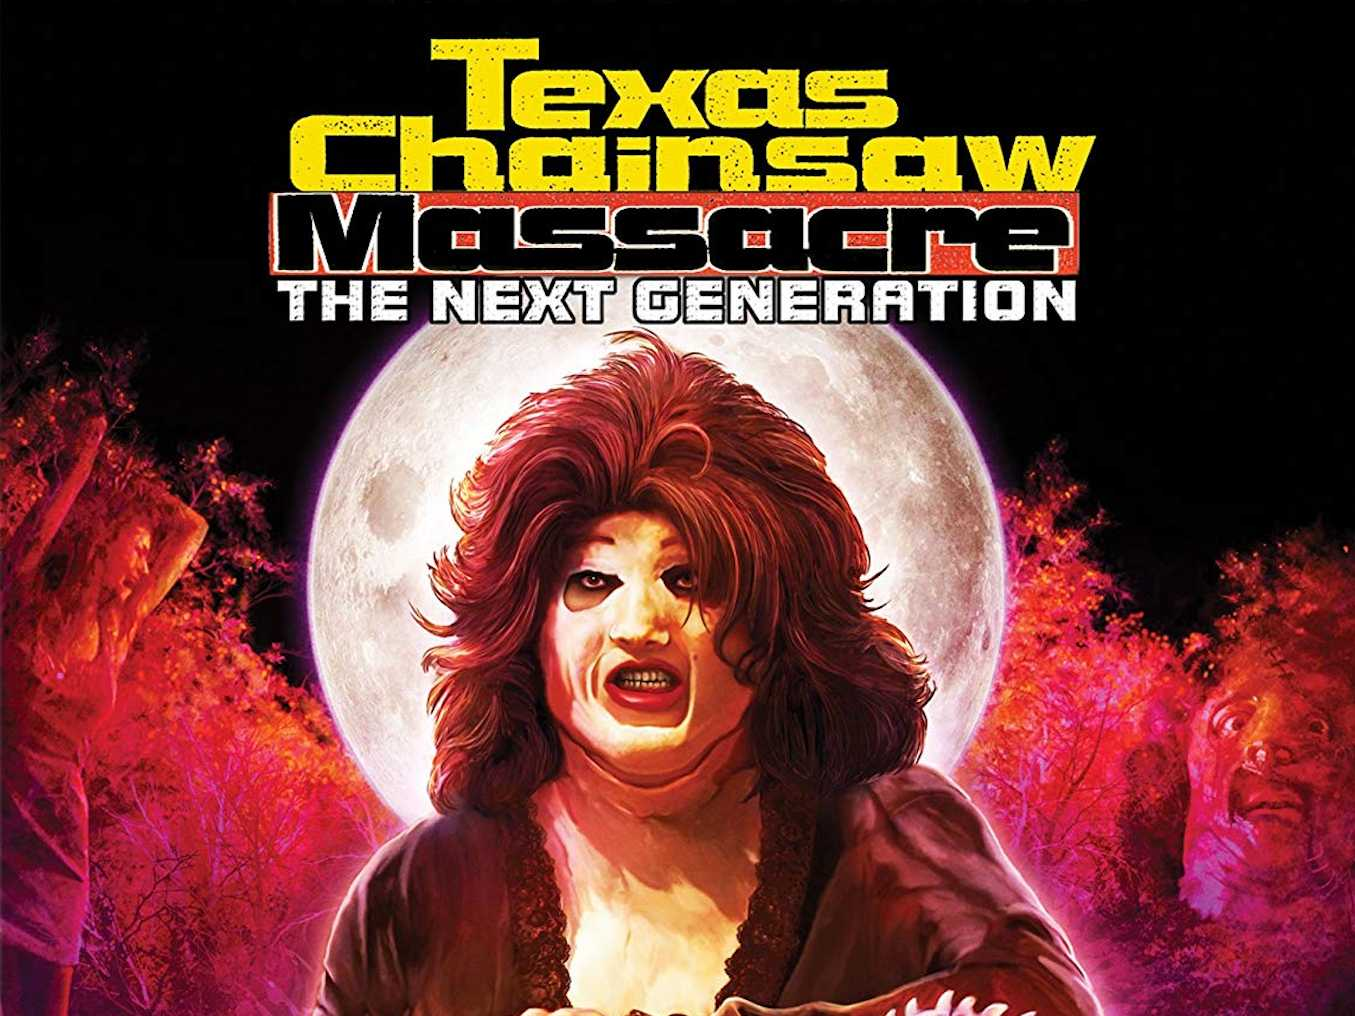 Review :: Texas Chainsaw Massacre: Next Gen' Collector's Edition